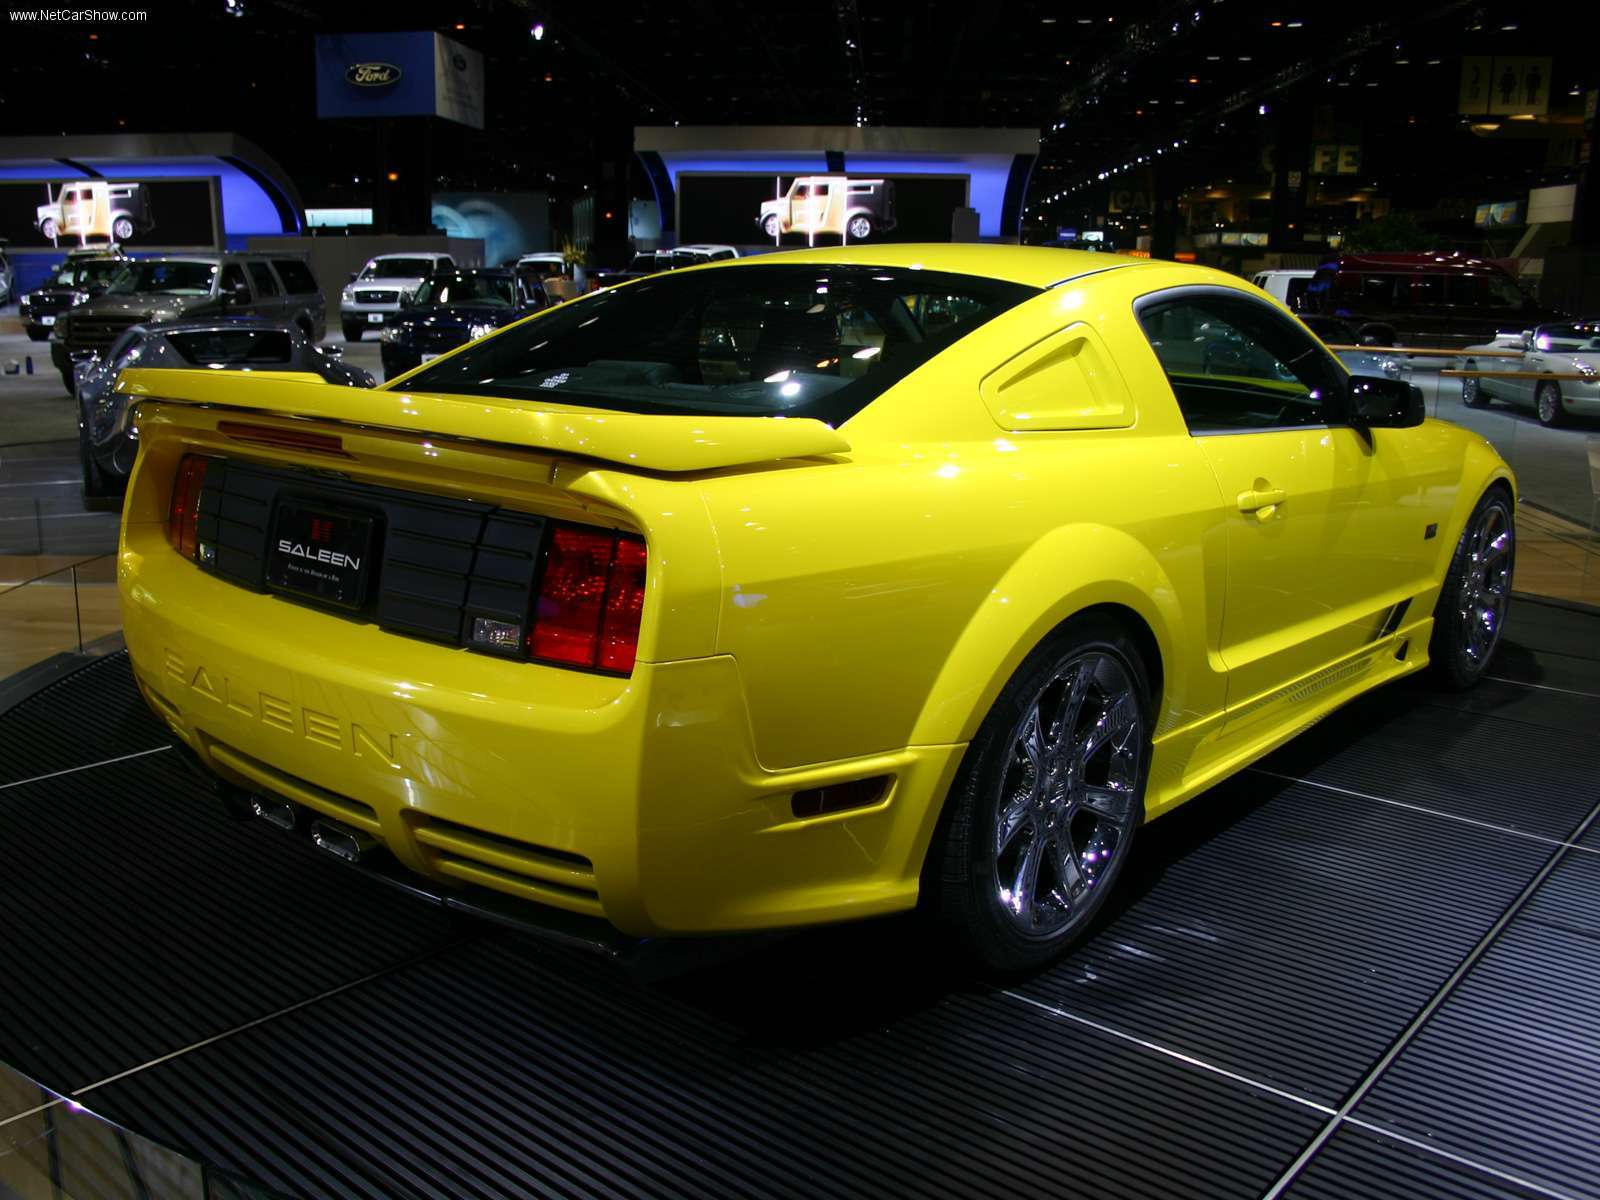 mustang rare Car yellow HD Wallpaper